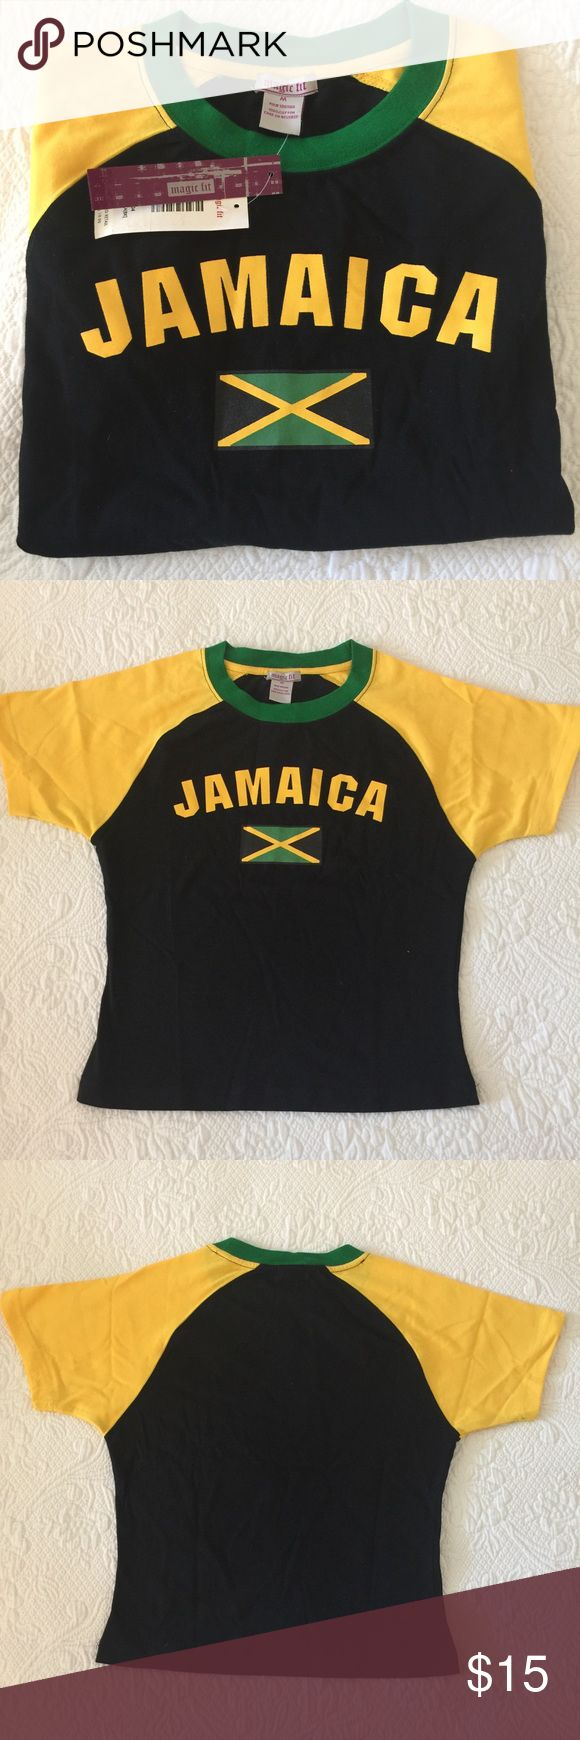 "Jamaica 🇯🇲 T-Shirt Jamaica 🇯🇲 T-Shirt... ""Magic Fit"" 100% Cotton, very good quality. Bold colors: Black...Yellow... Green... On front of Shirt, hand painted ""Jamaica"" & ""Flag 🇯🇲"" !!!!!!!! Wear yuh colors on August 6th... Jamaica Independence Day! Magic Fit Tops Tees - Short Sleeve"